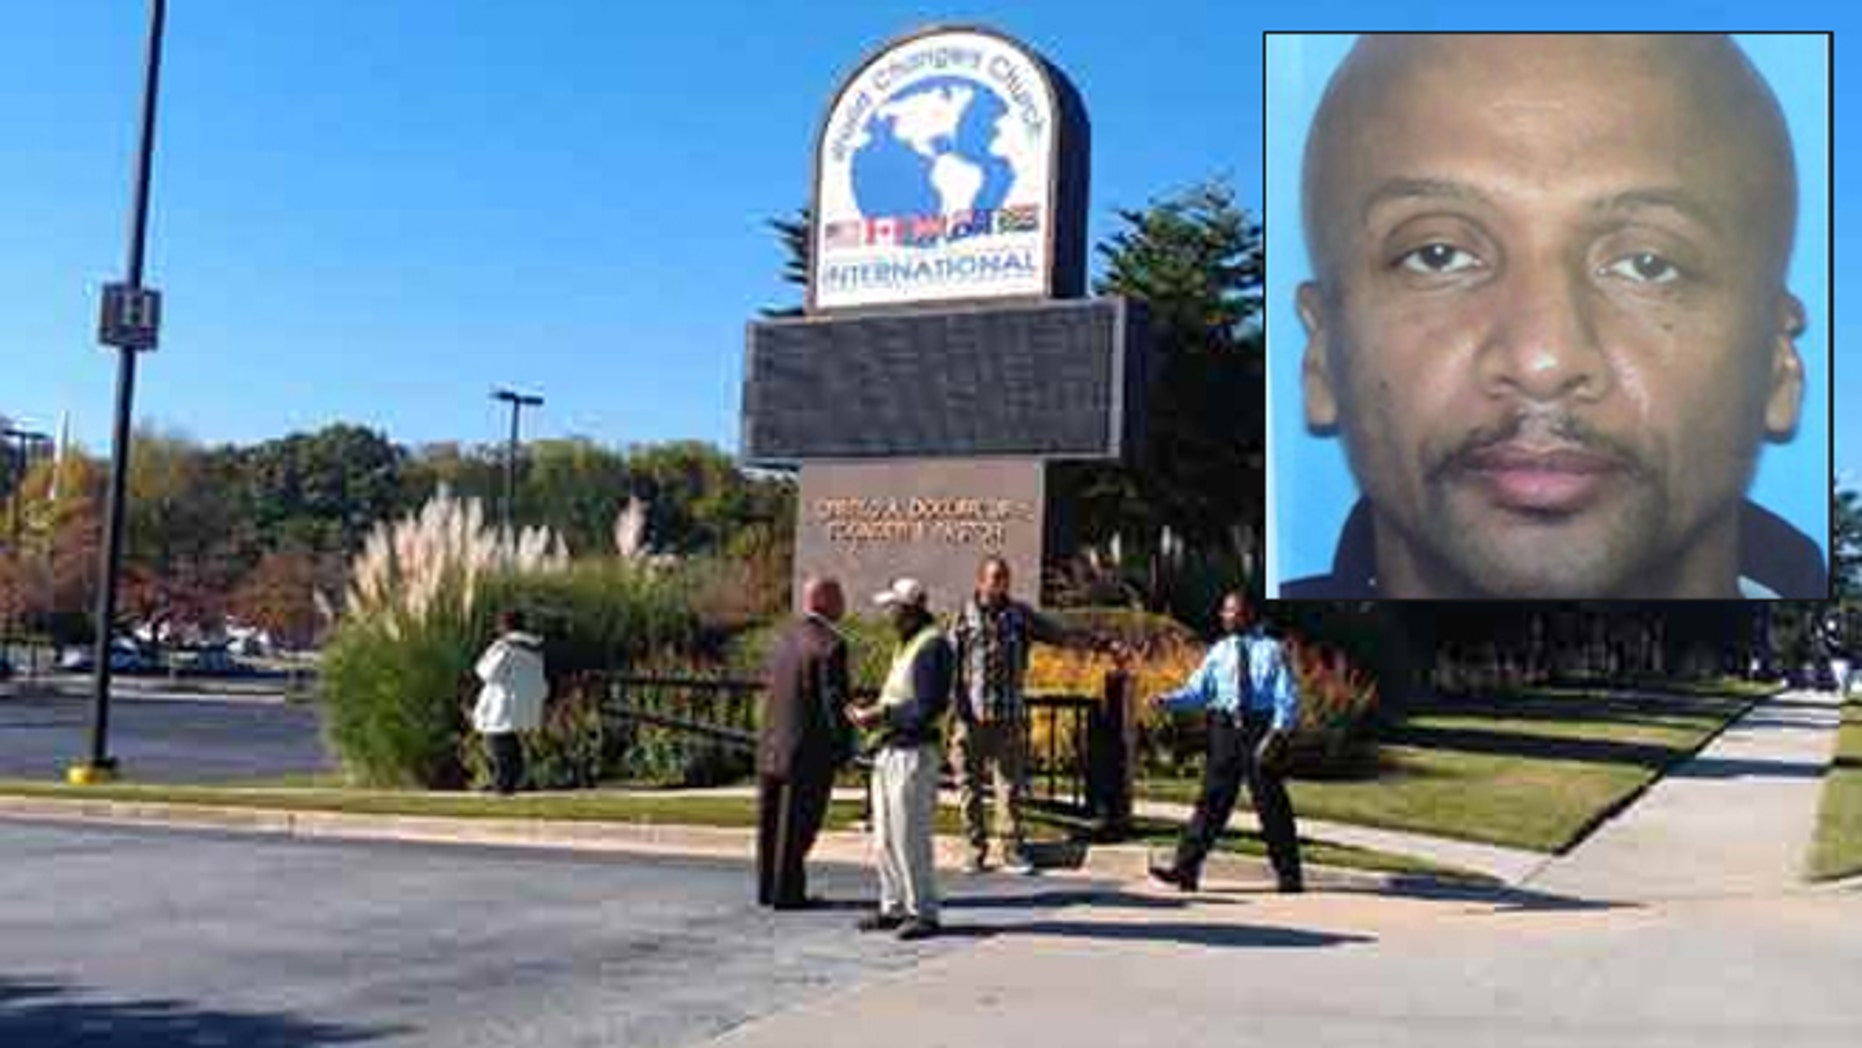 Police on the scene of a deadly shooting at World Changers International Church in College Park. Floyd Palmer was named the suspect.